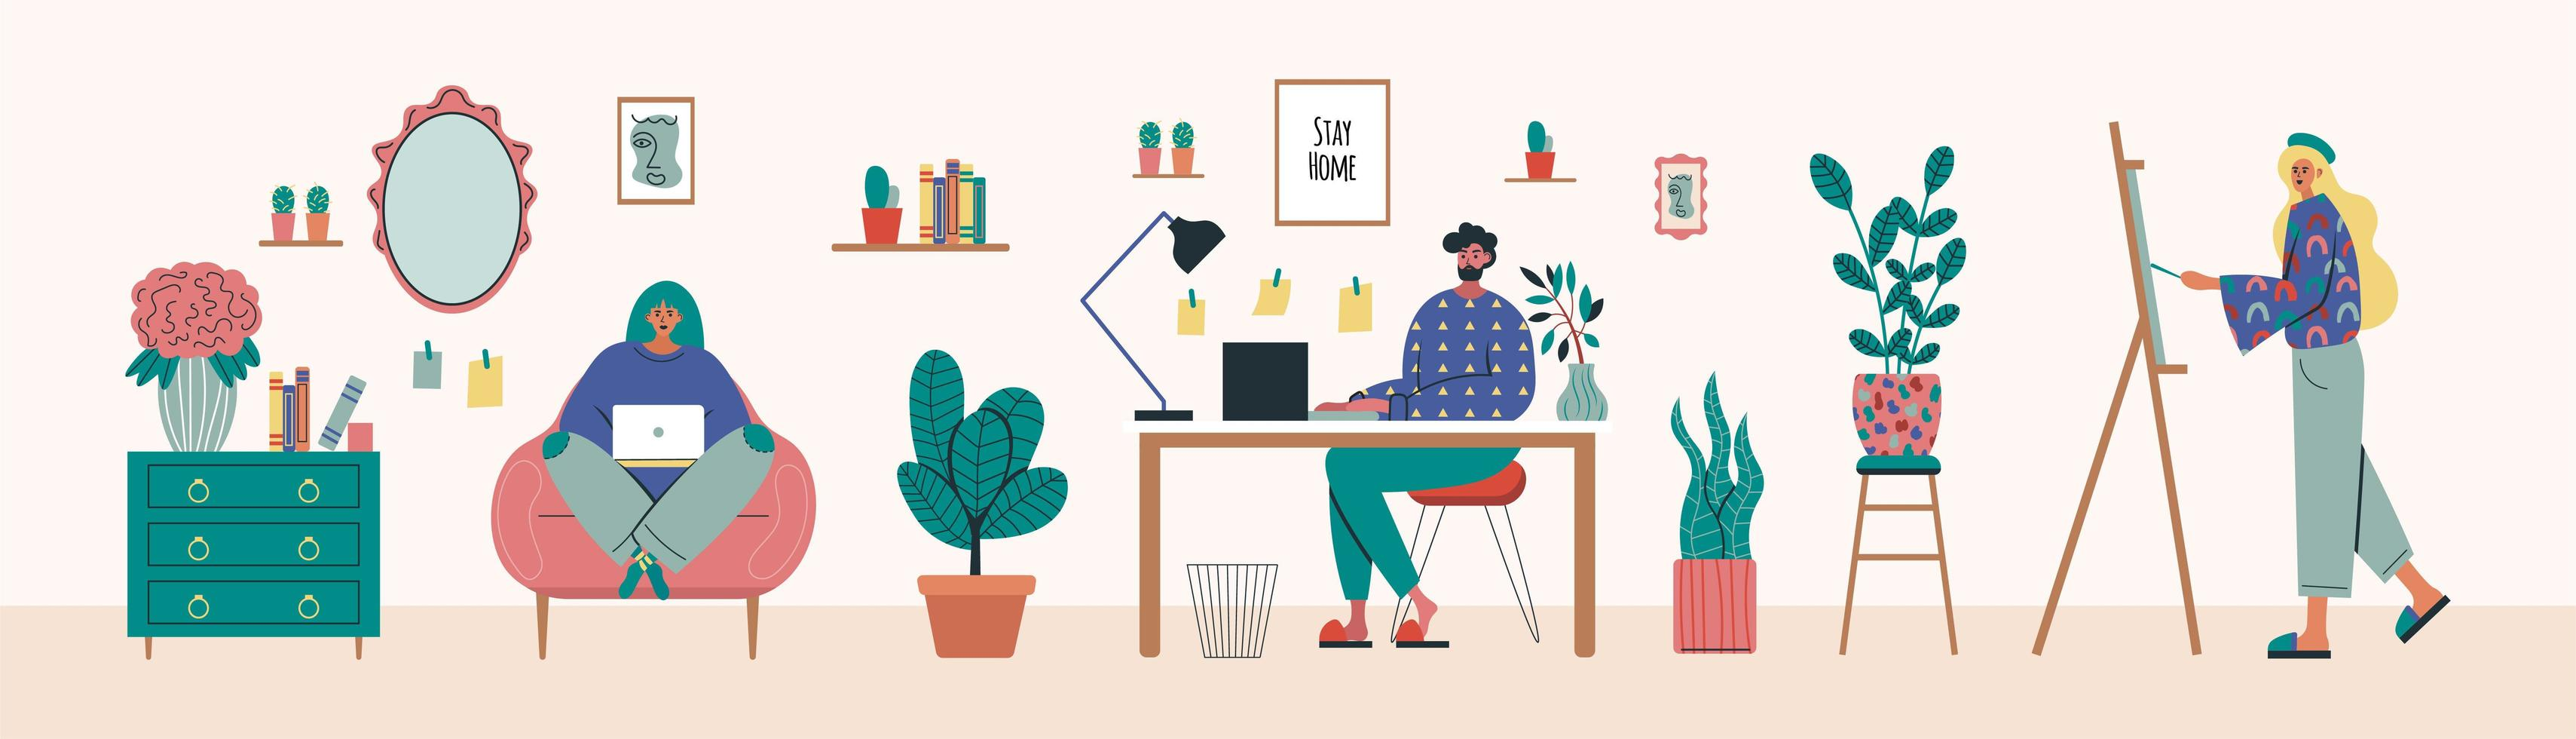 Freelance artists working at home vector